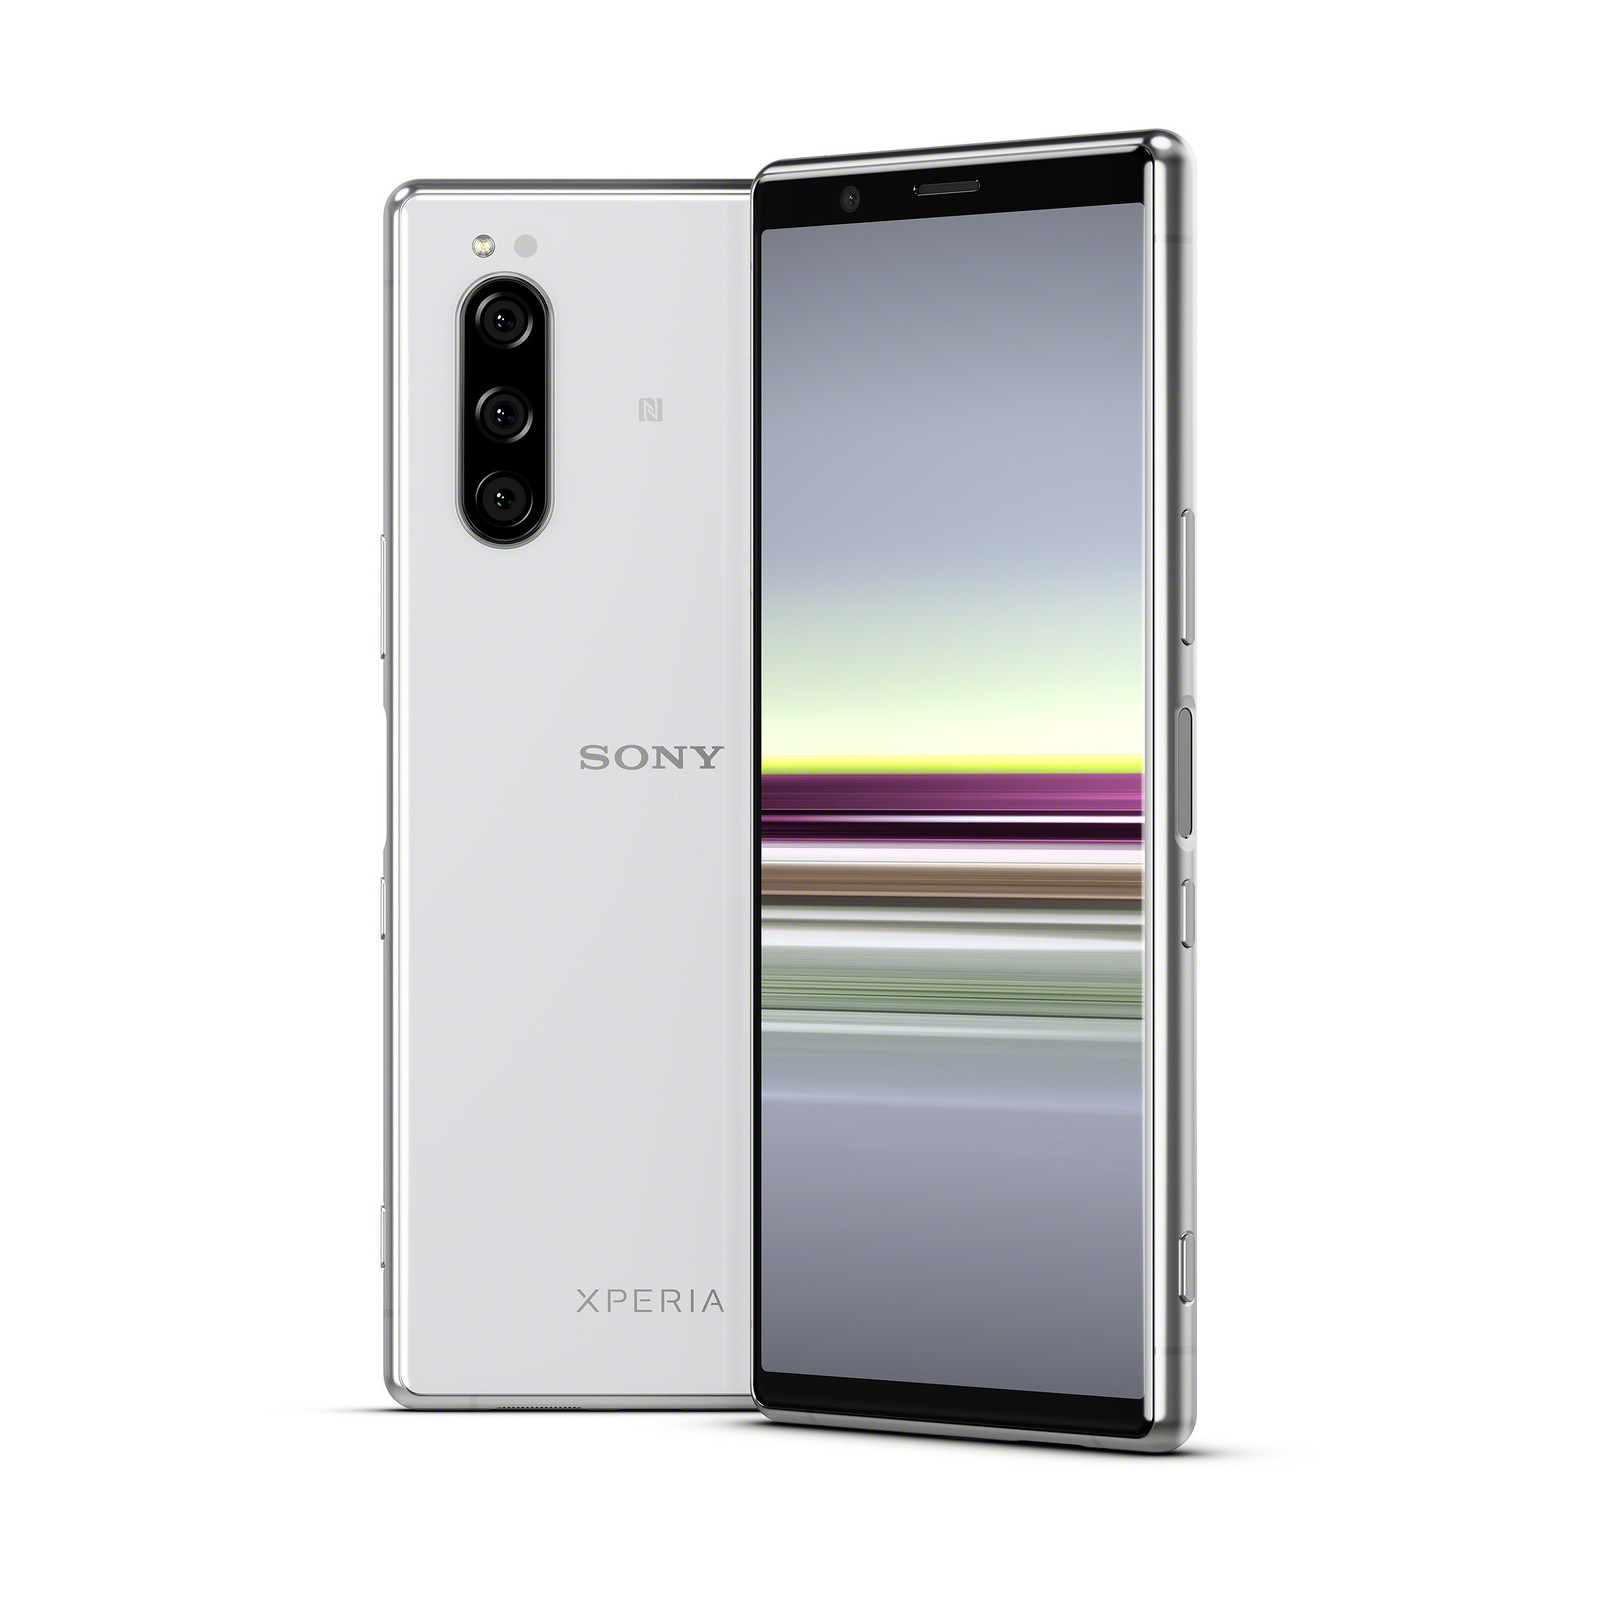 Xperia 5 joins Sony's flagship series, bringing creative